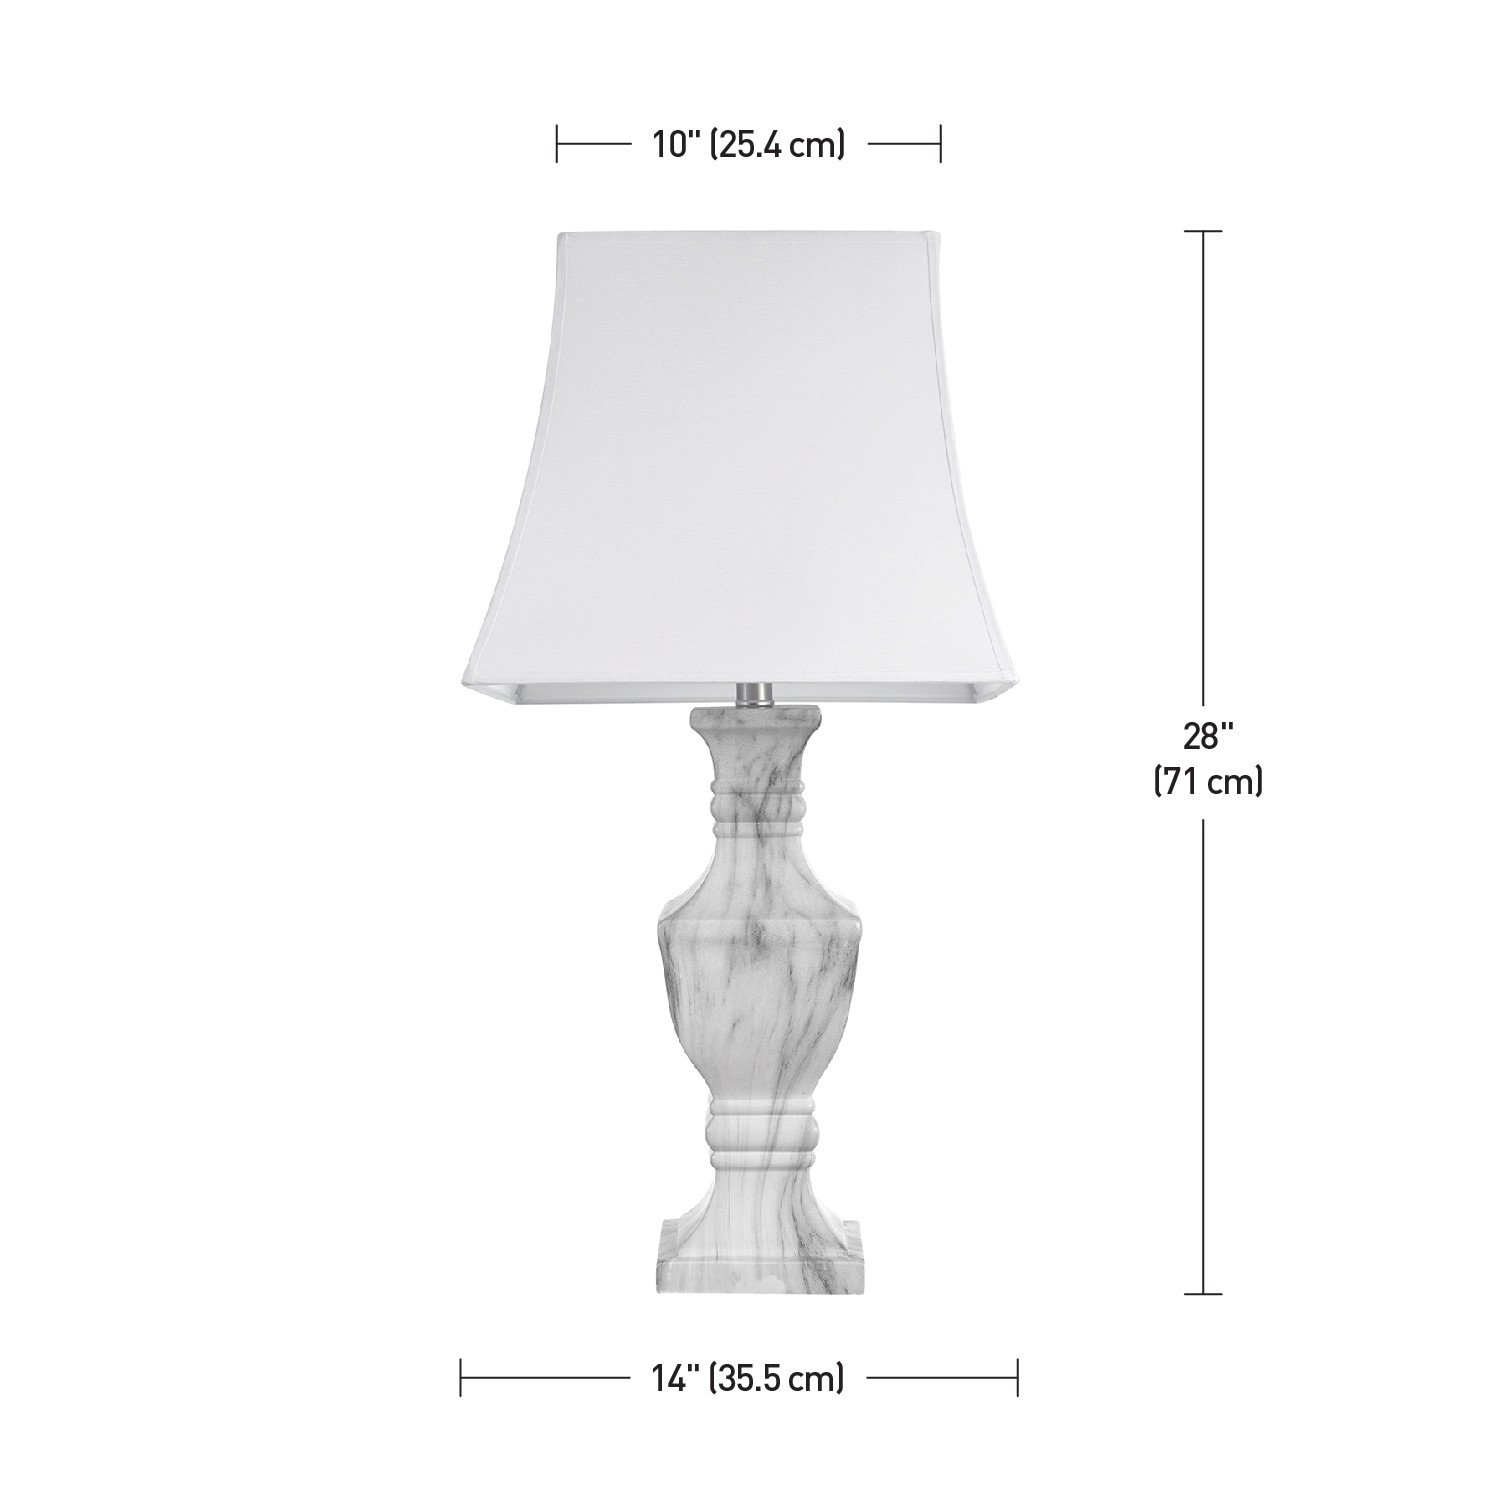 Amazon.com: Globe Electric 12751 Marble Finish Table Lamp: Home Improvement